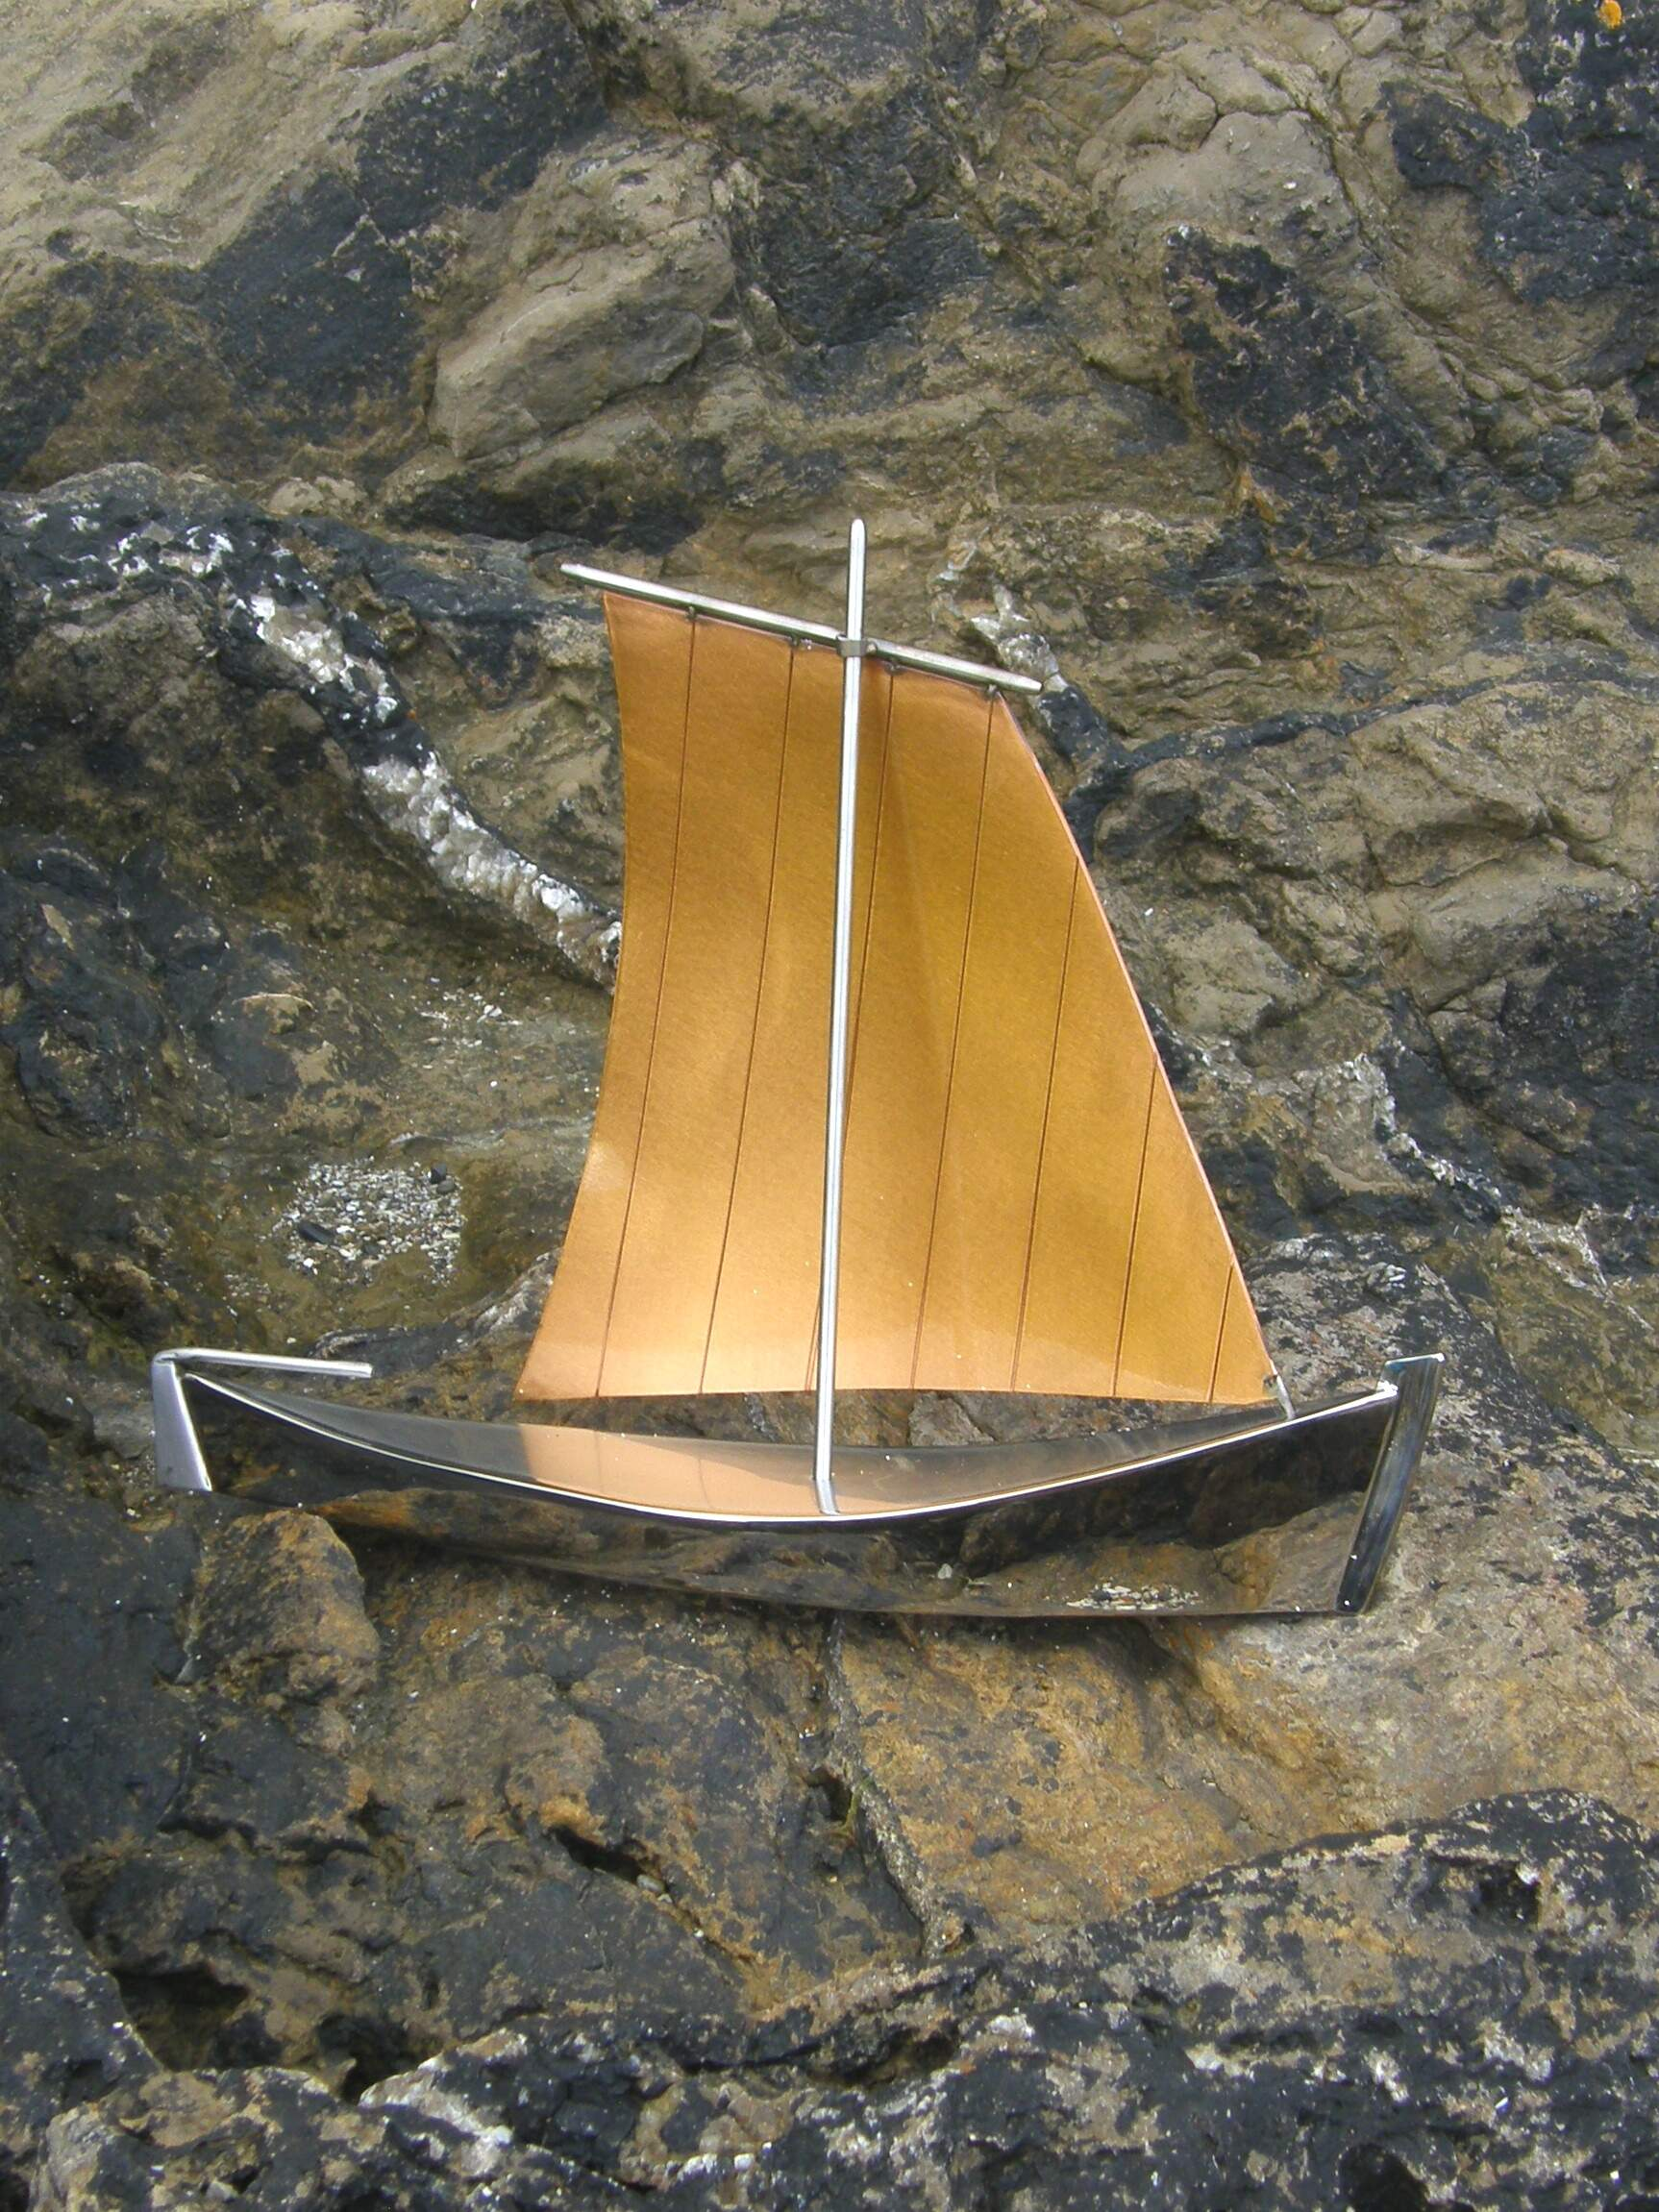 Starboard view of Nolwenn based on traditional sailing boats found in the Gulf of Morbihan